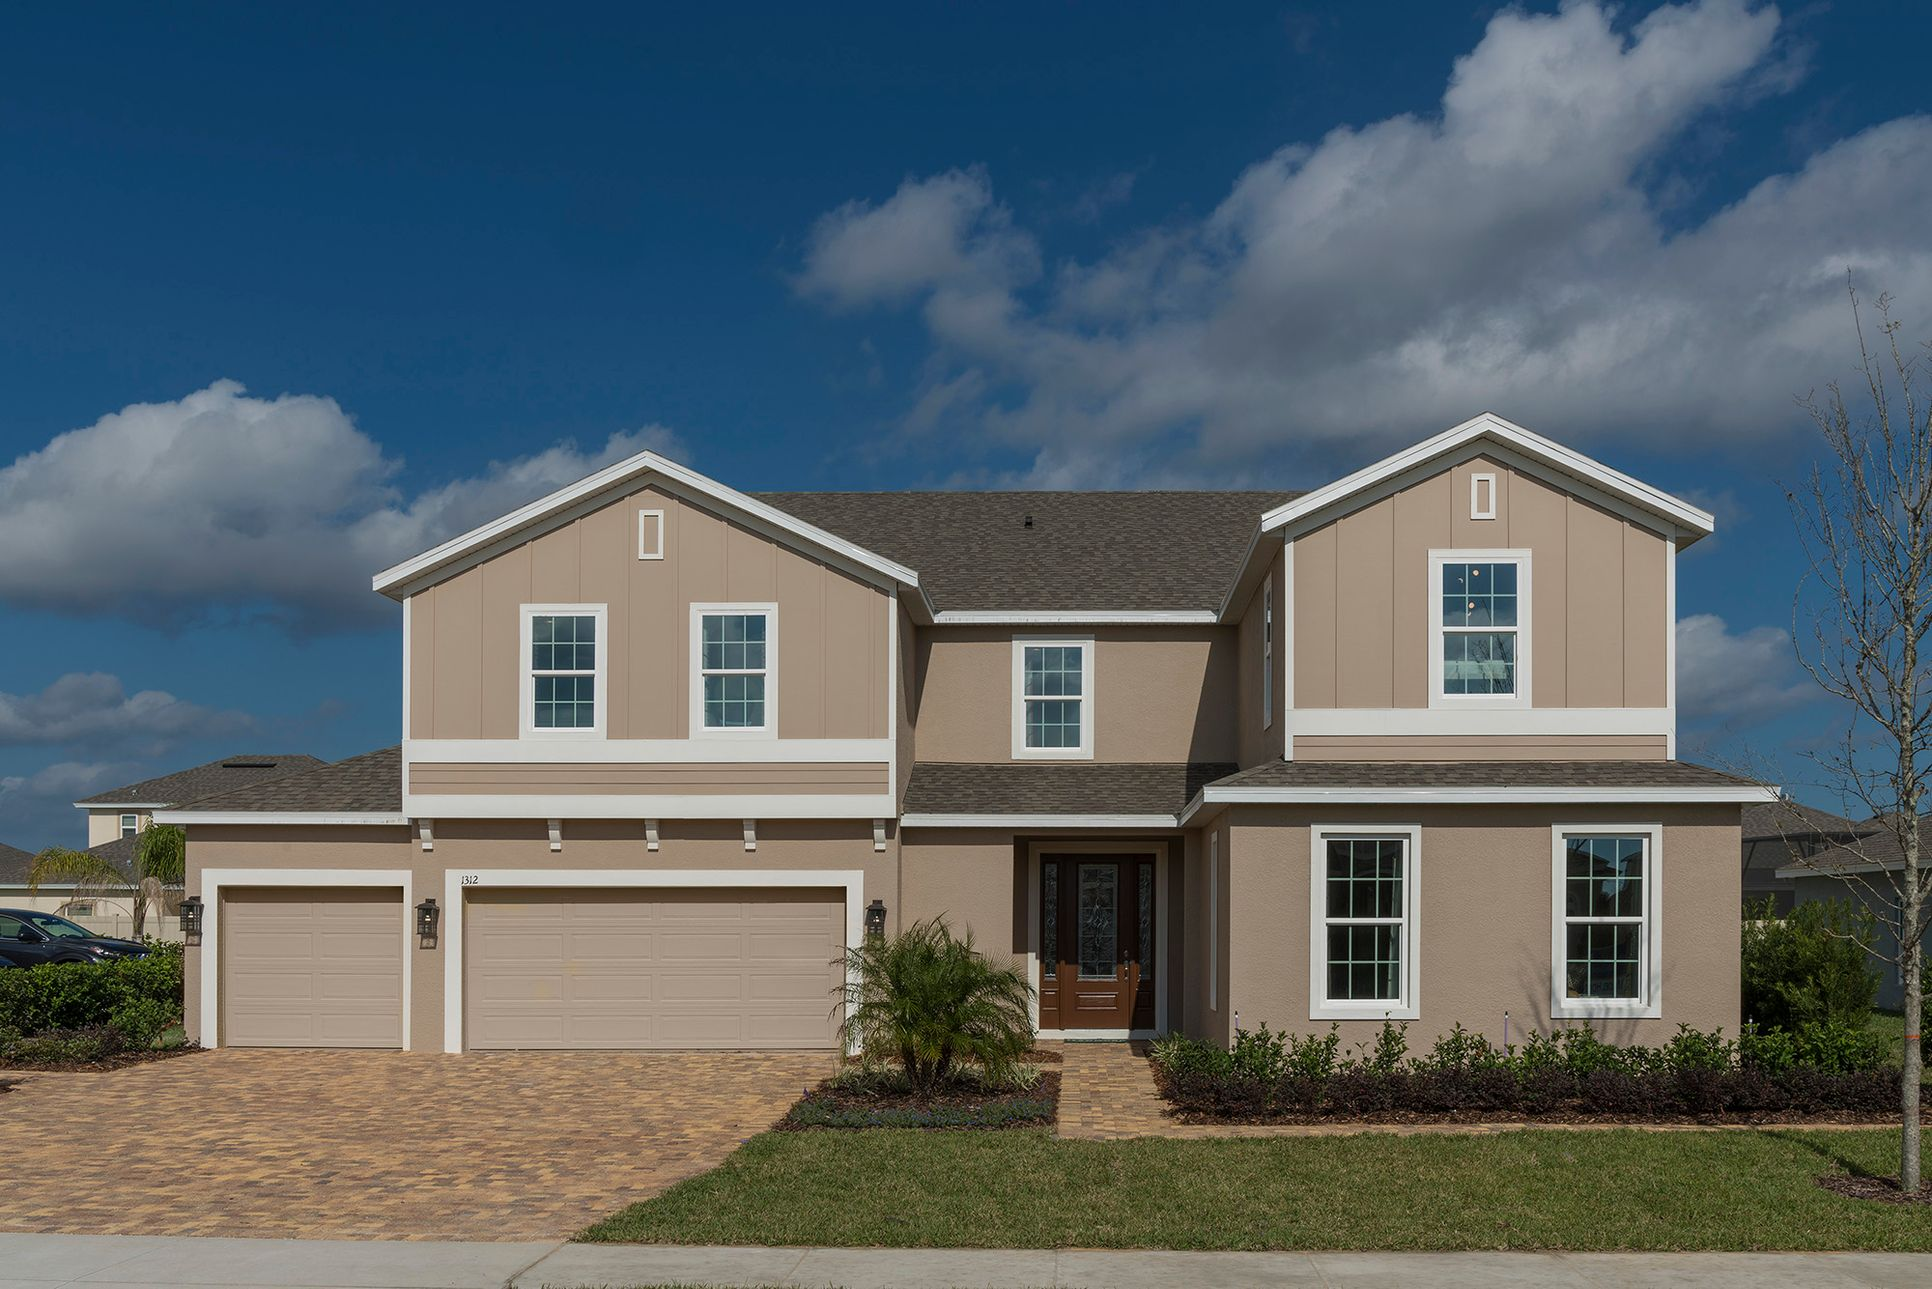 Palmer - Elevation 2 with Optional Cladding